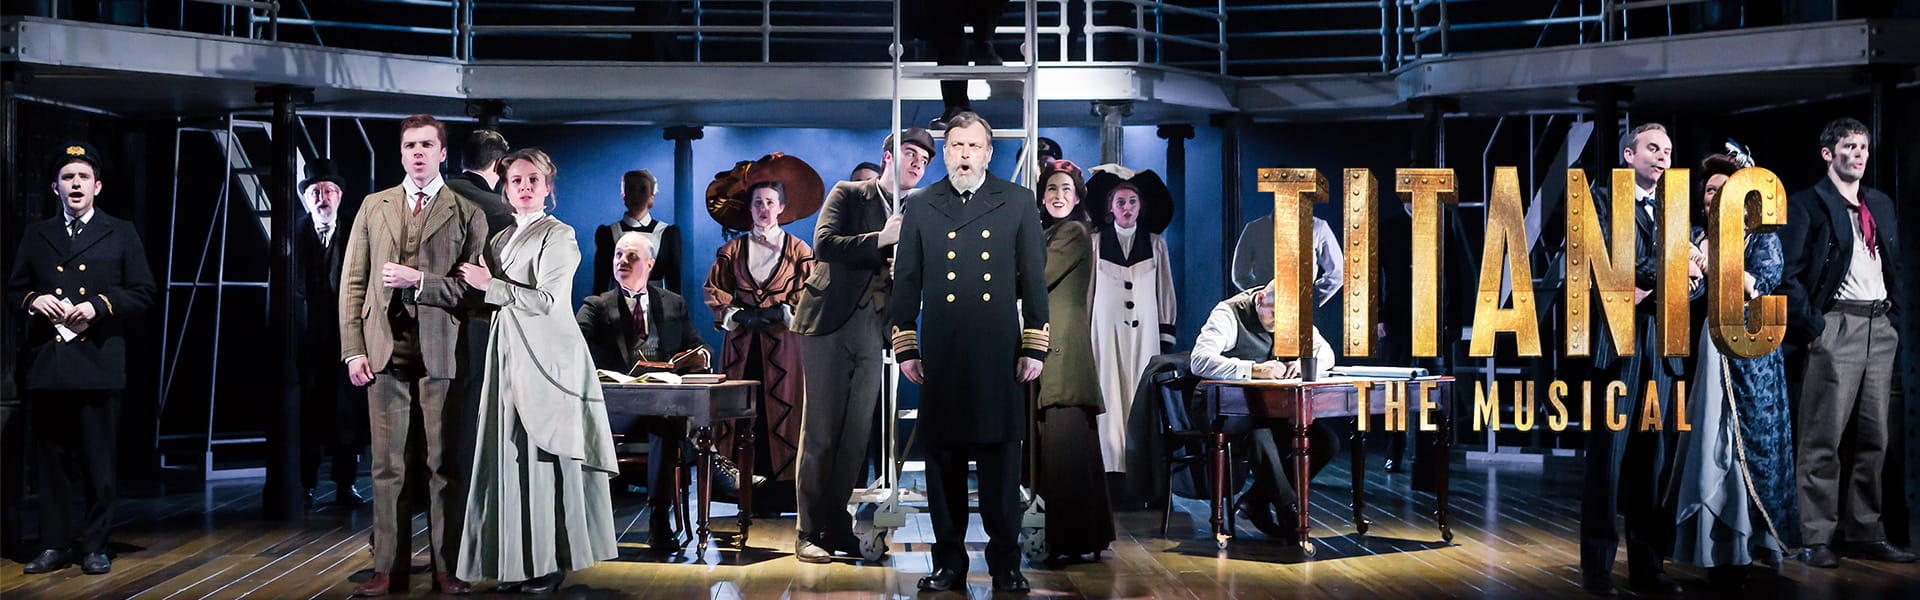 Titanic The Musical Embarks on its International Tour